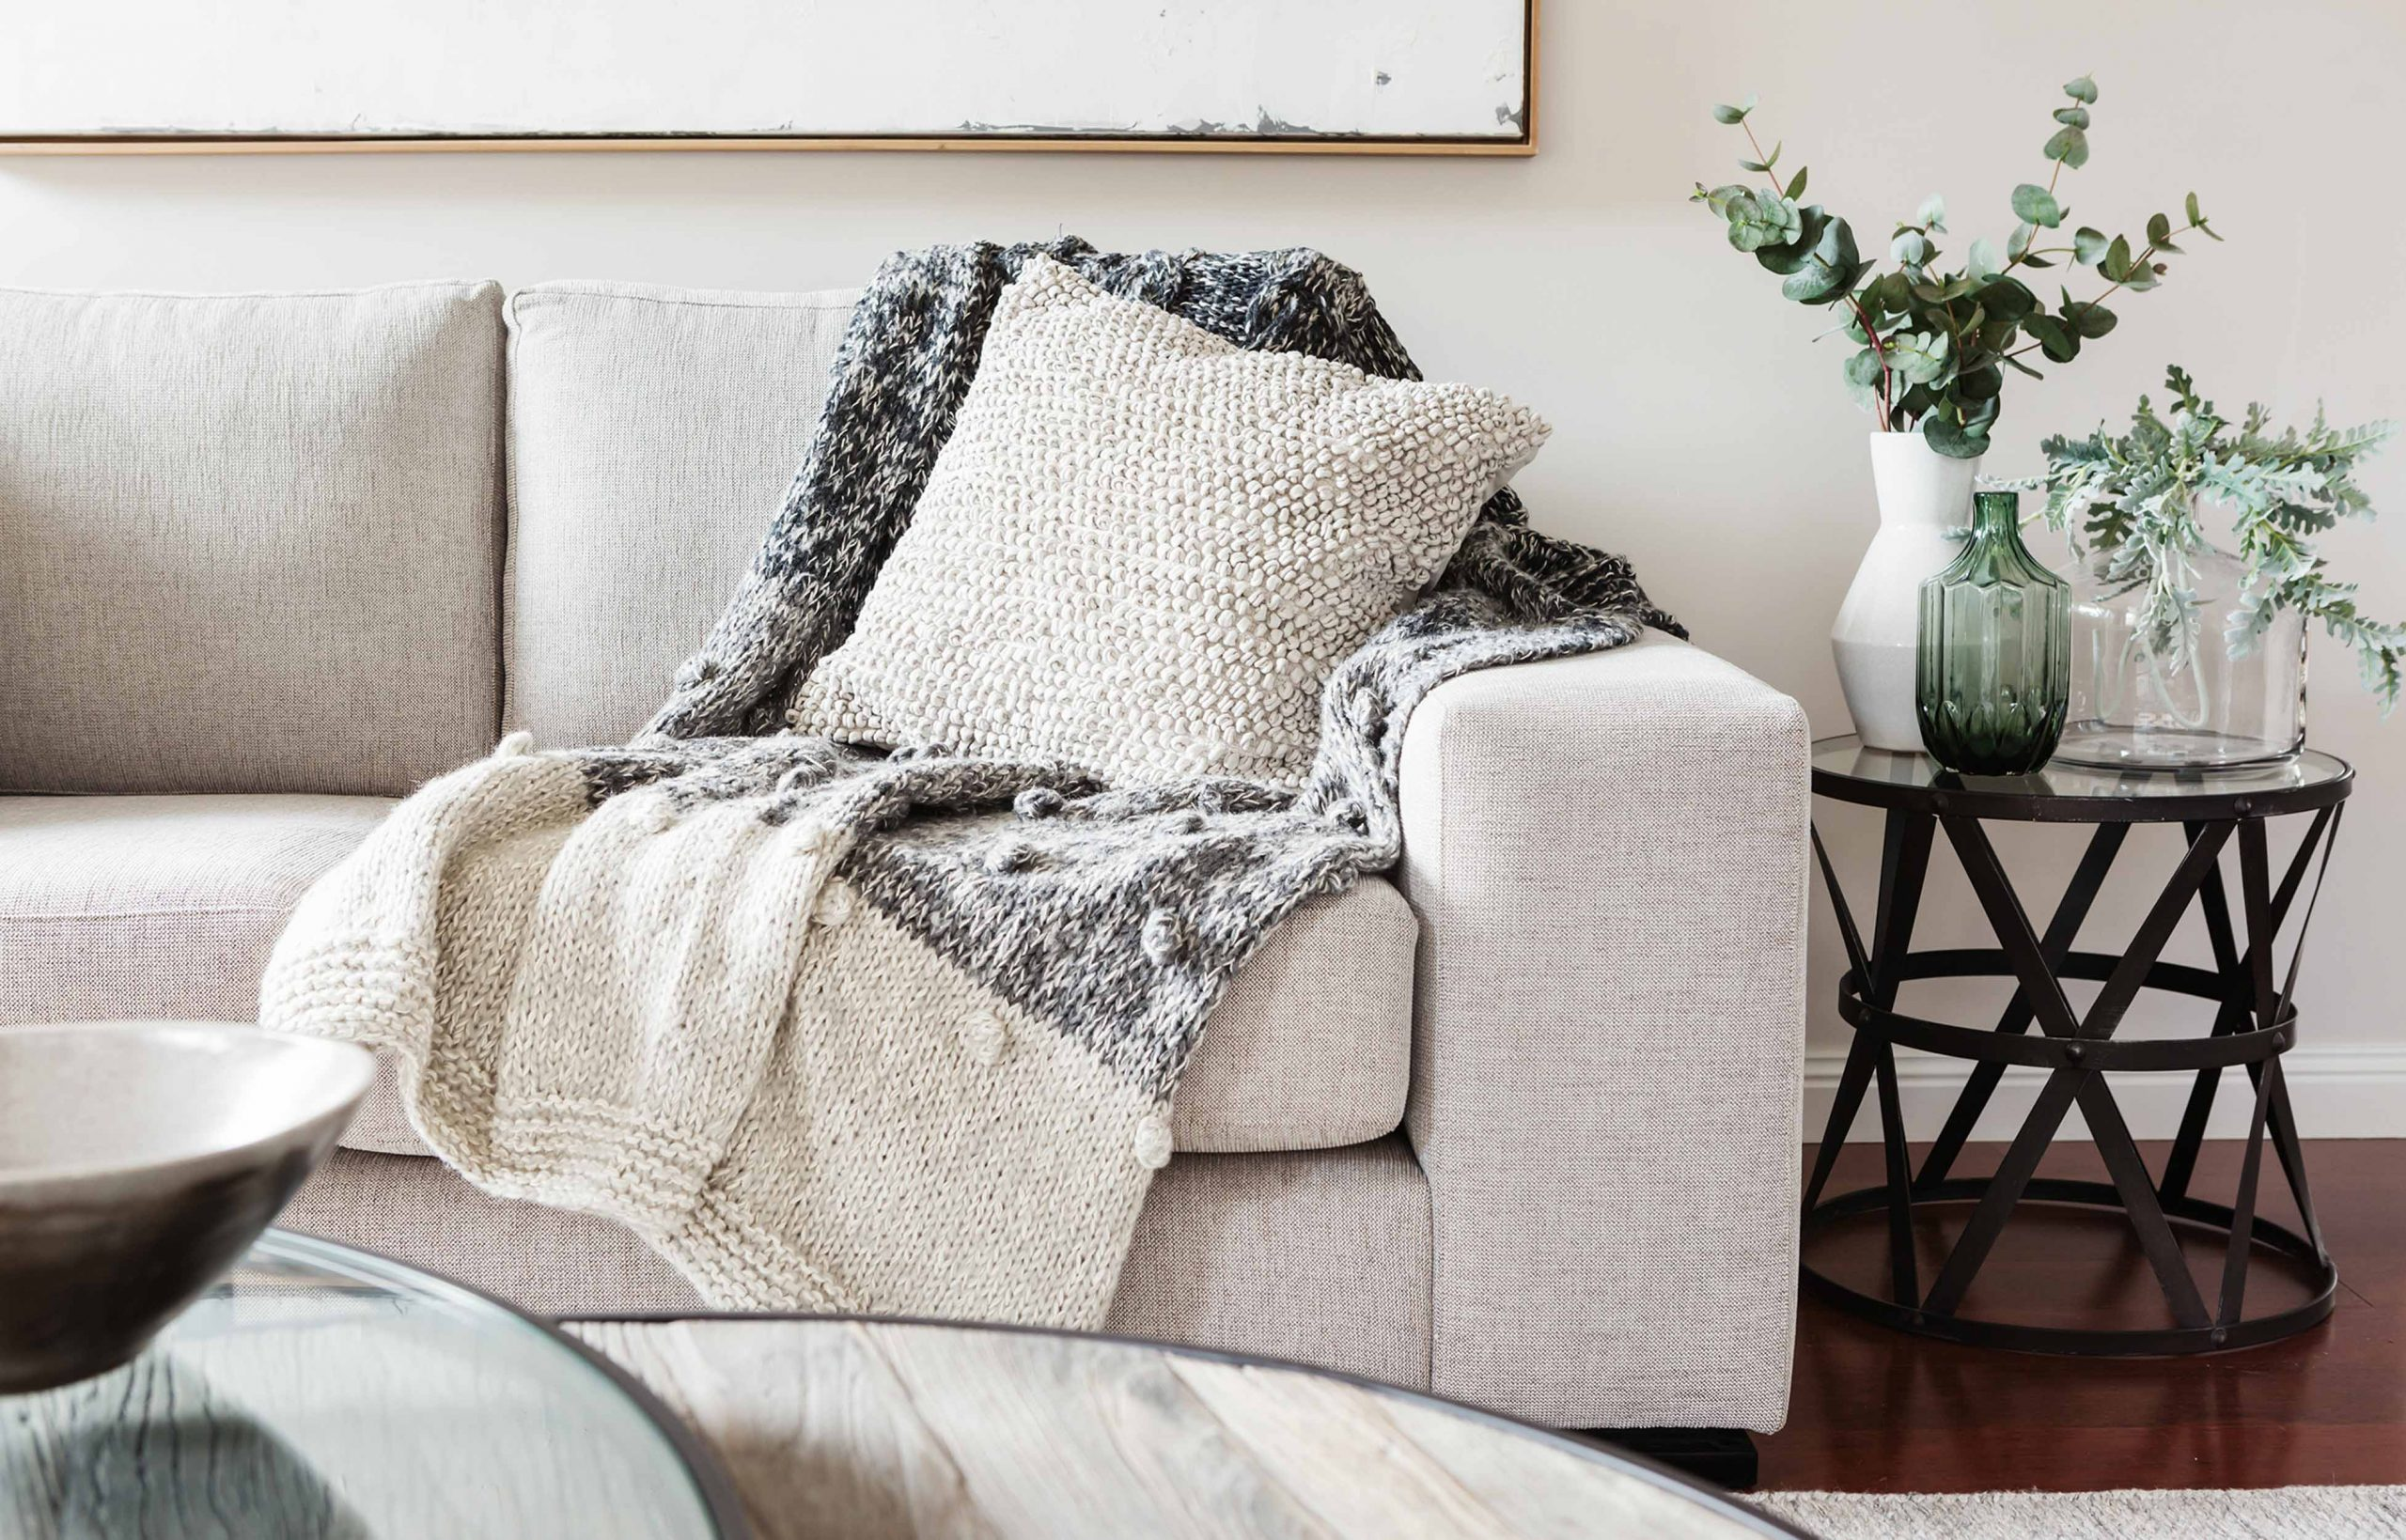 Textured layers interior styling of cushion sofa dn throw in nue